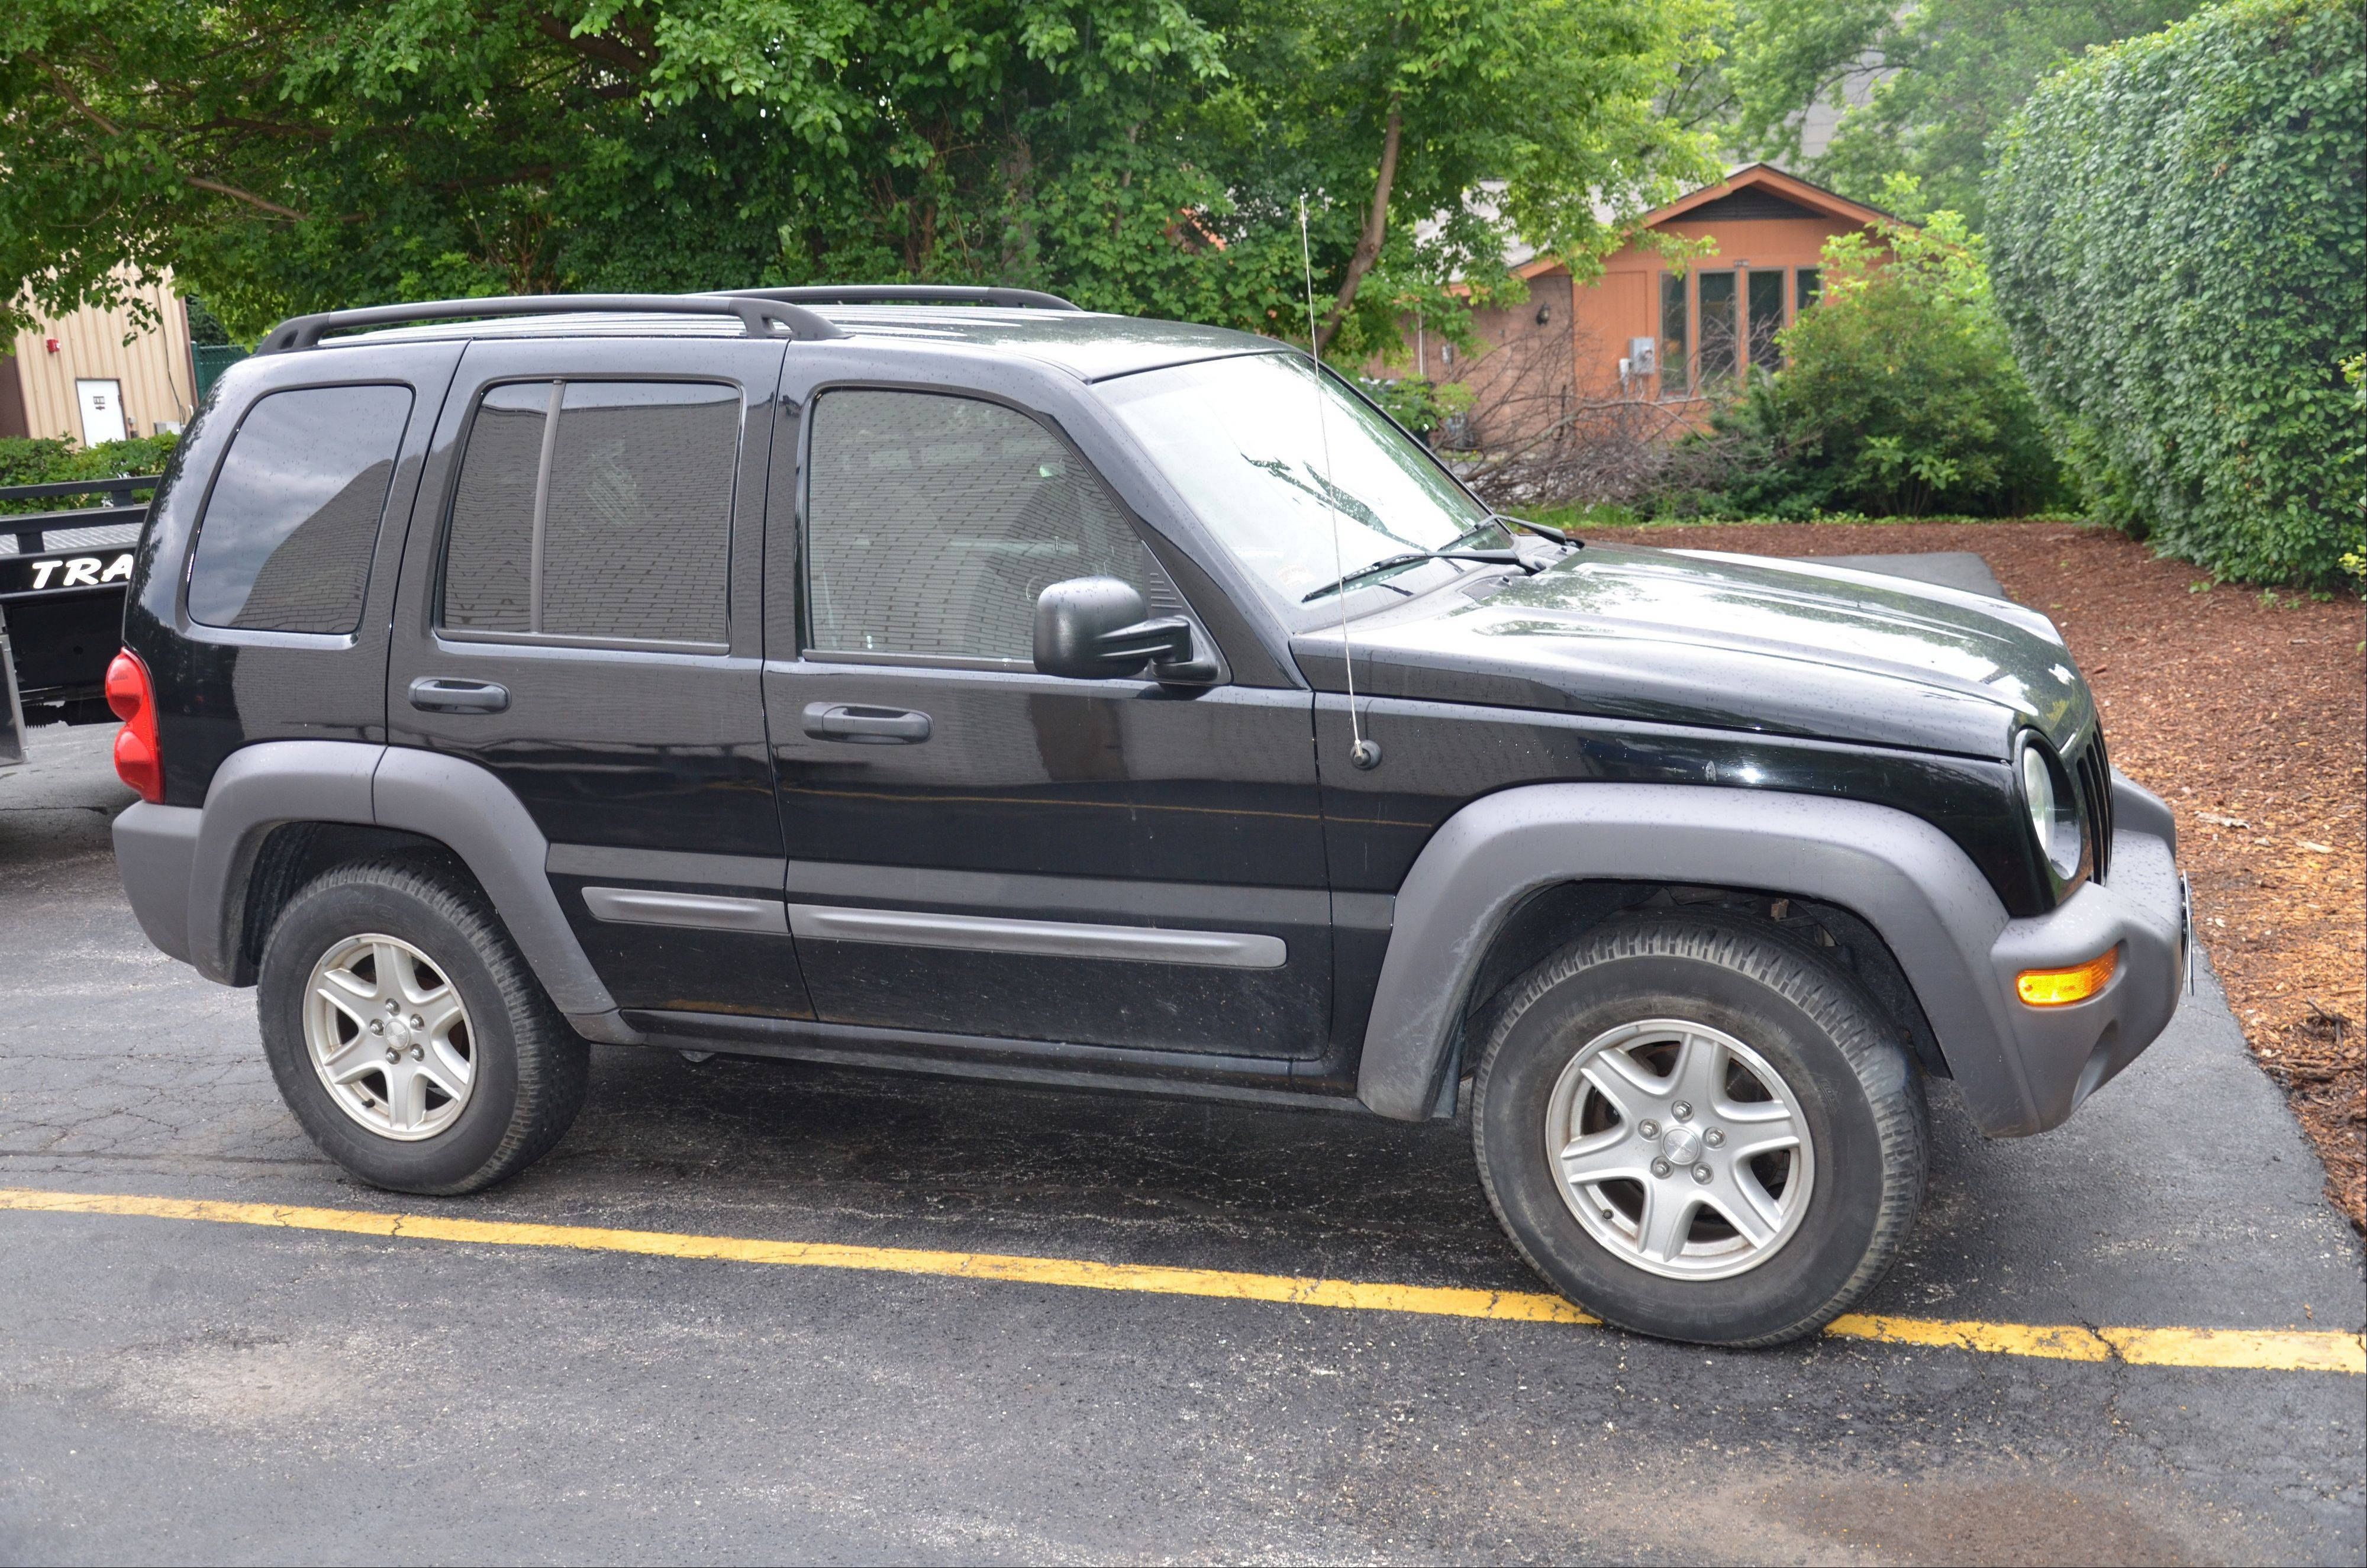 Police believe this Jeep Liberty was stolen by three men who tried to rob a jewelry store Sunday at Oakbrook Center mall in Oak Brook. Police found the vehicle abandoned less than a half-mile from the mall Monday morning, authorities said. To report information, call (630) 368-8760.